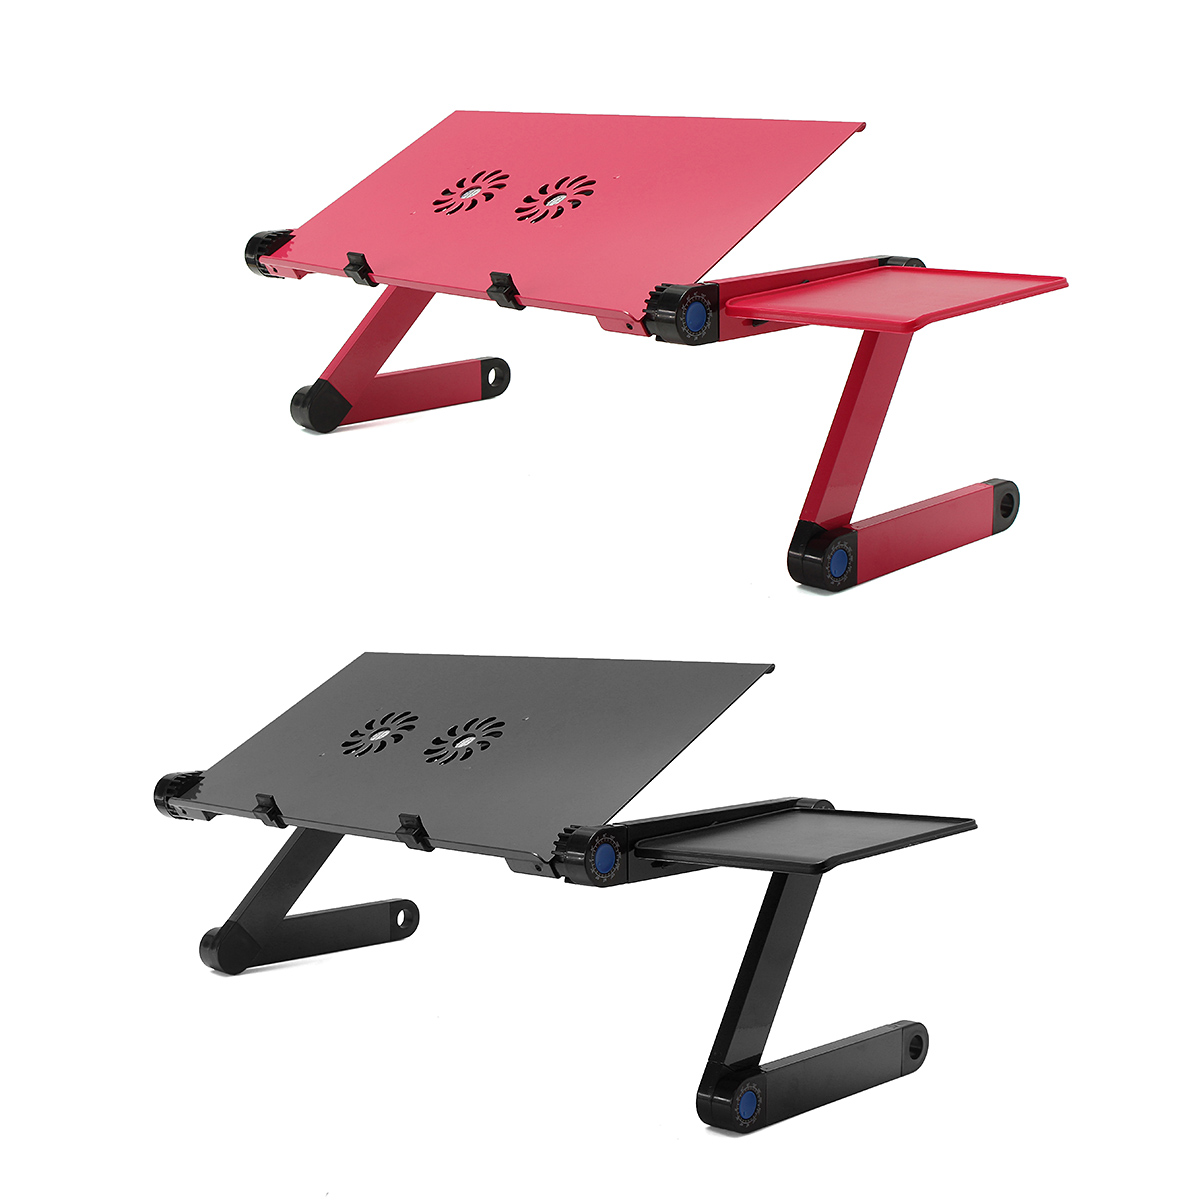 Aluminum Alloy 360 Degree Adjustable Folding Computer Laptop Desk with Cooling Fans